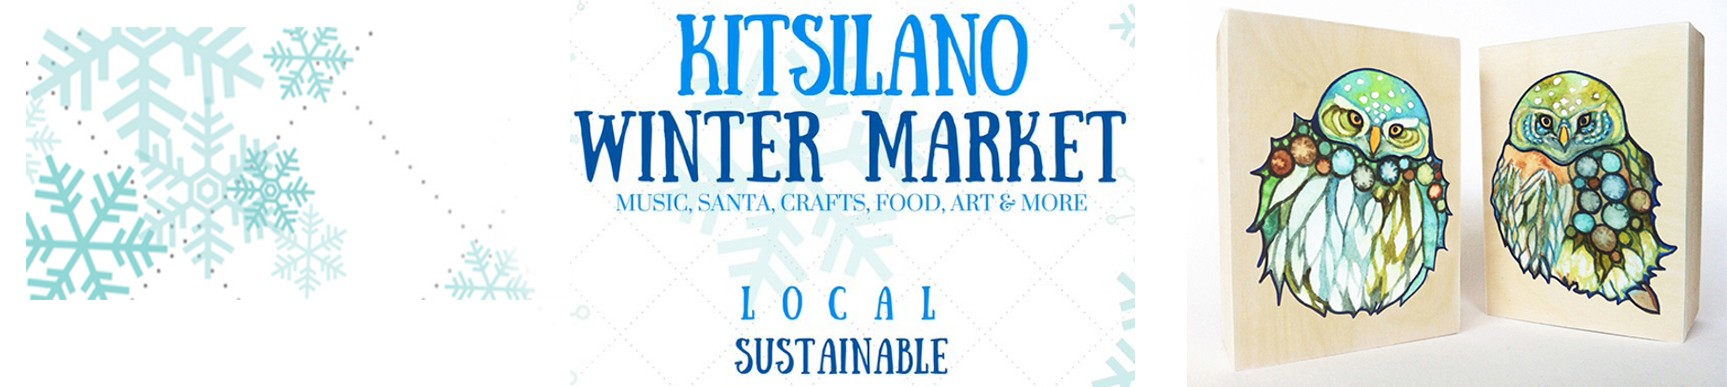 kits winter market 2018 .jpg